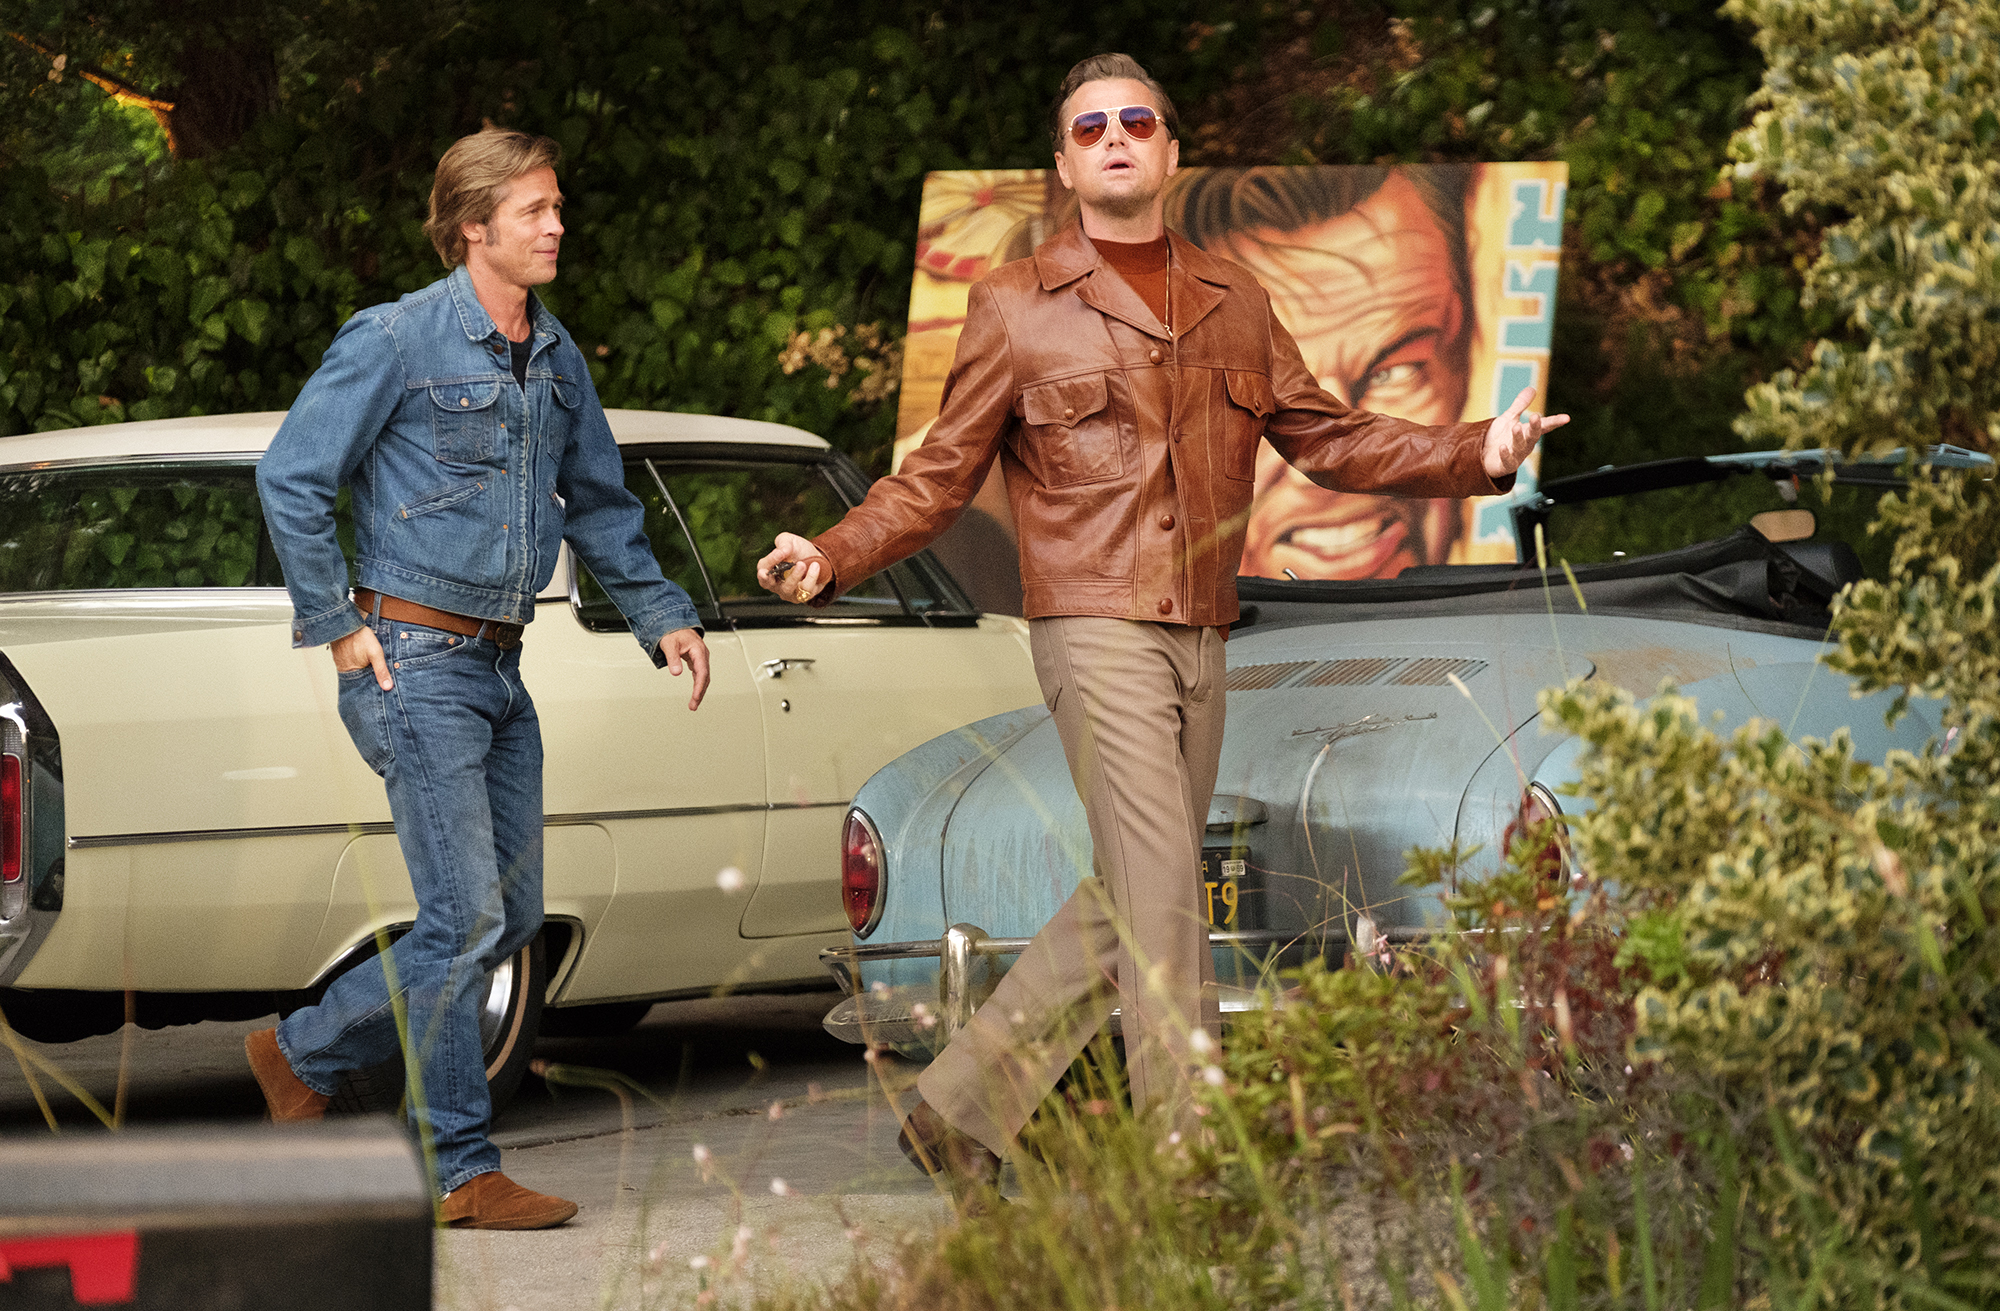 'Once Upon a Time in Hollywood' is a misty-eyed valentine to La La Land - with just a touch of B-movie gore